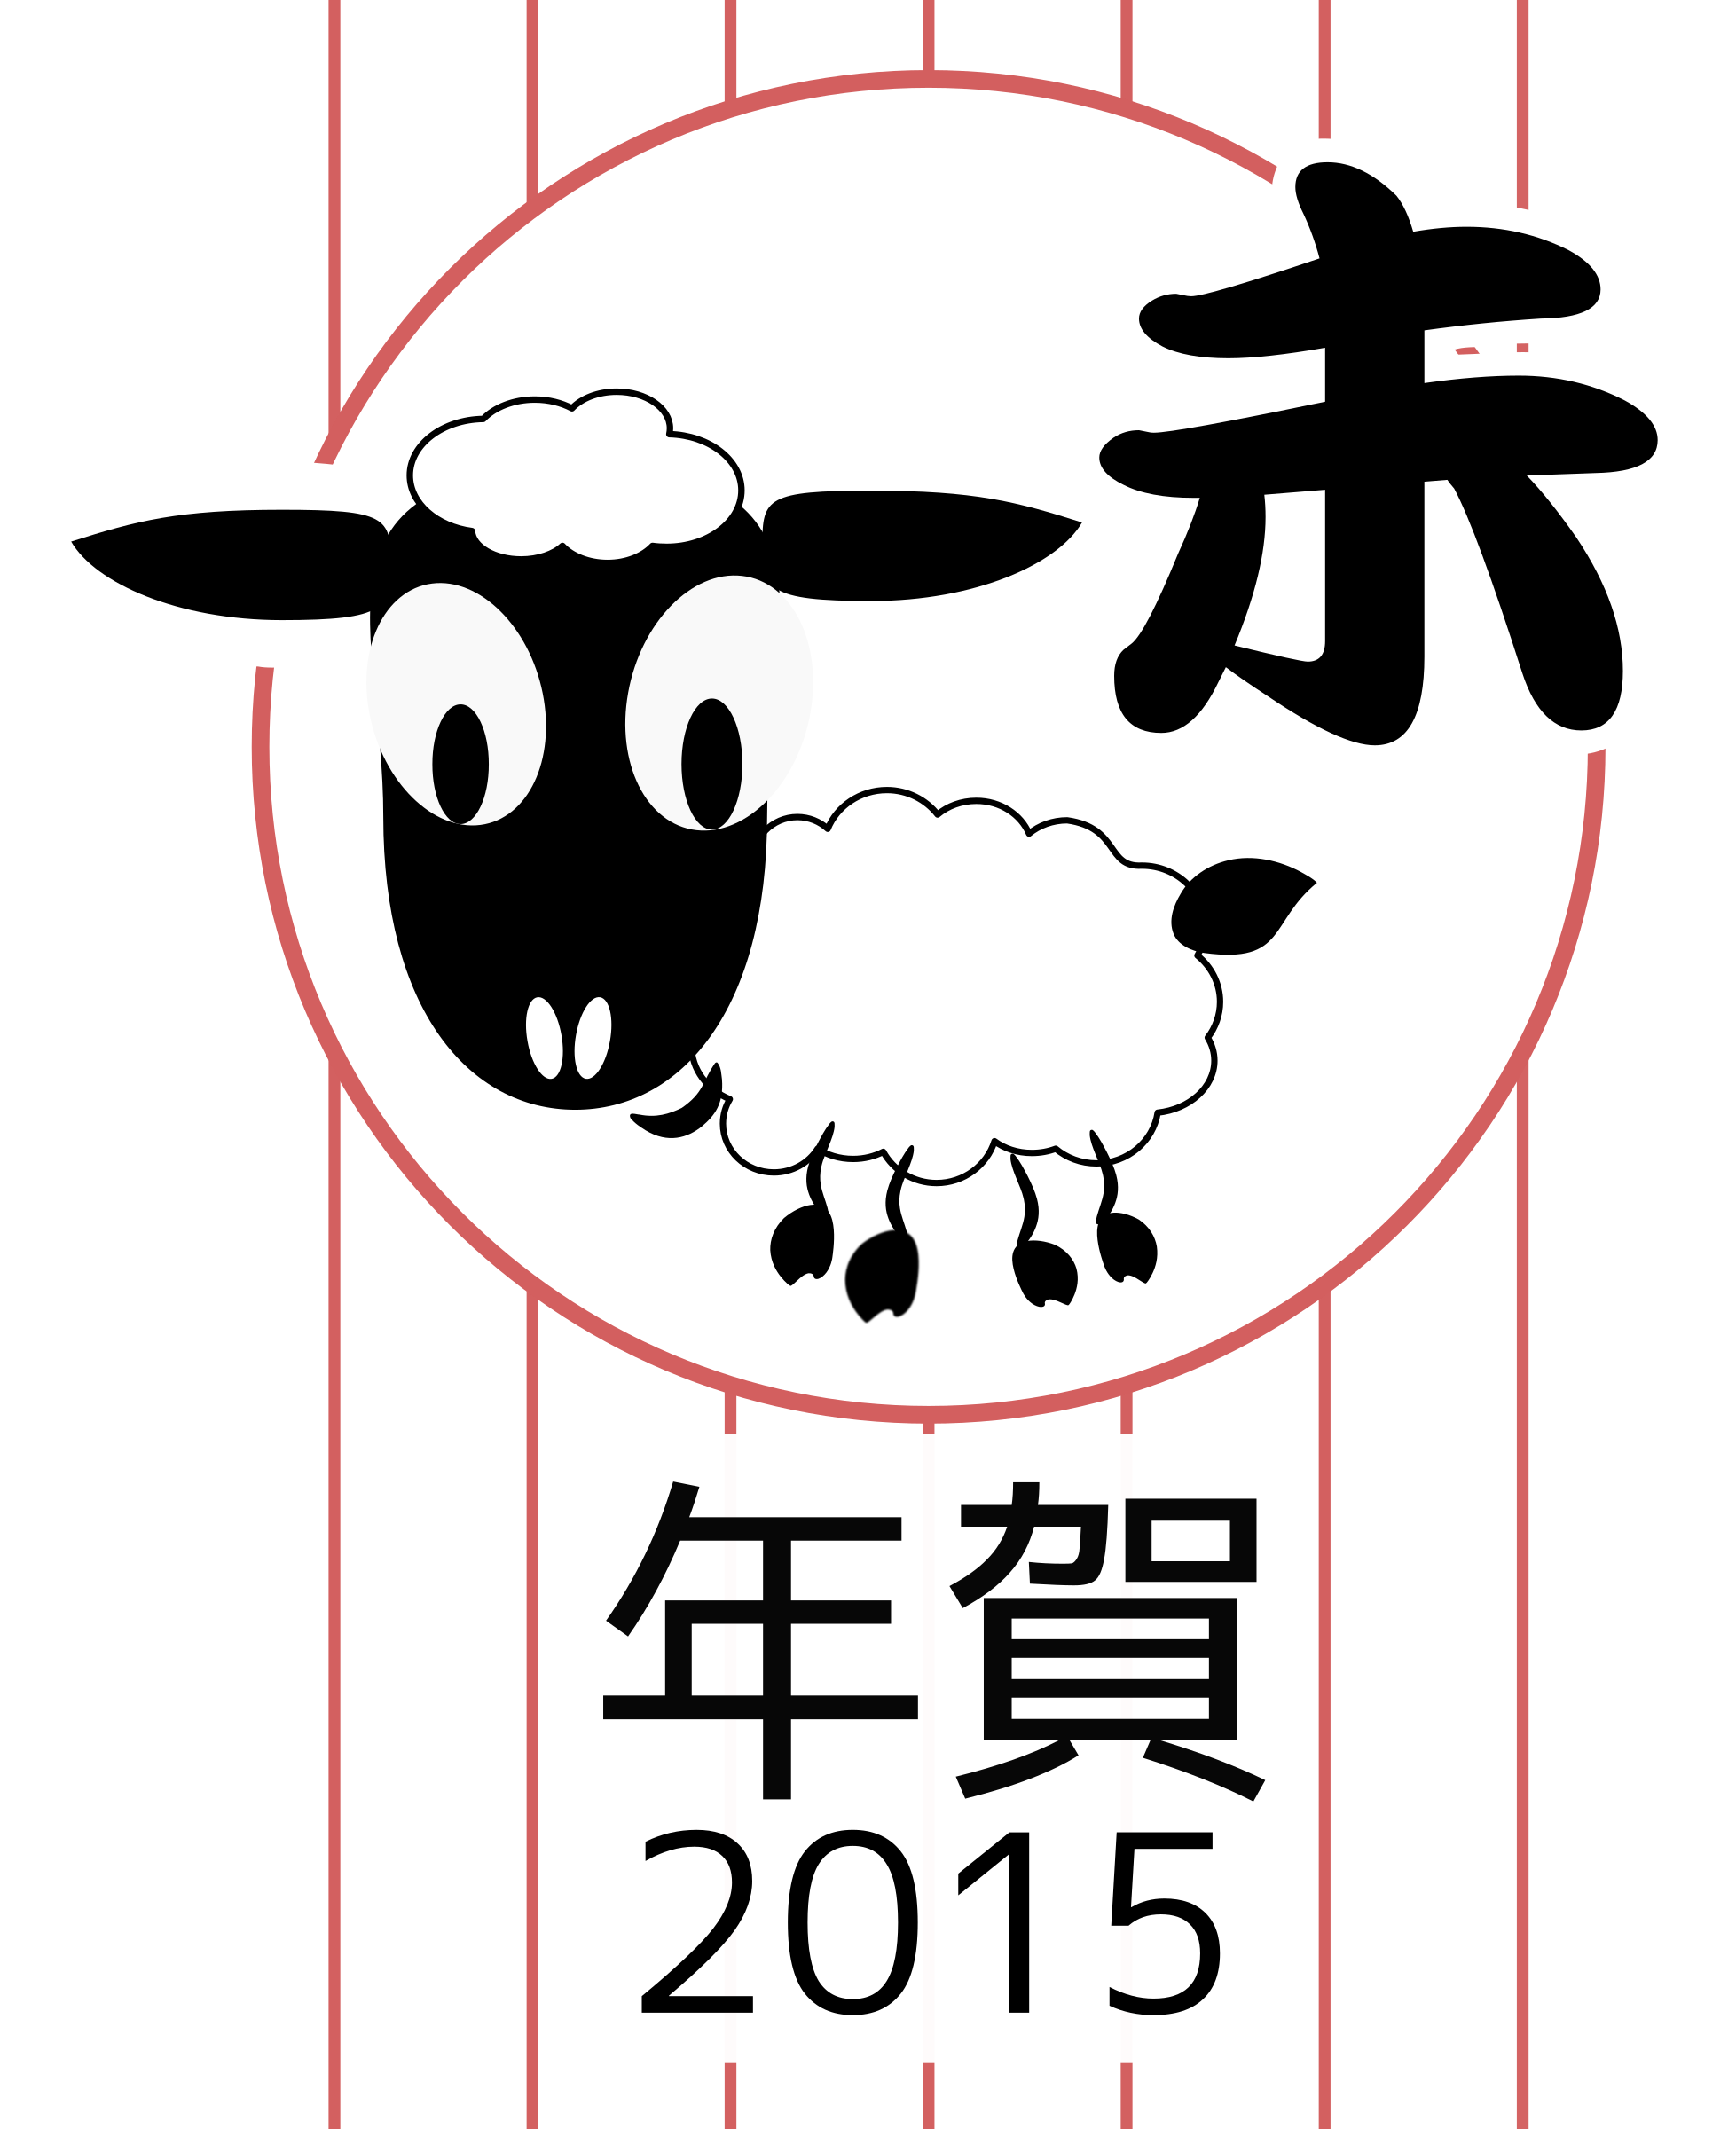 Chinese zodiac sheep - Japanese version - 2015 by uroesch